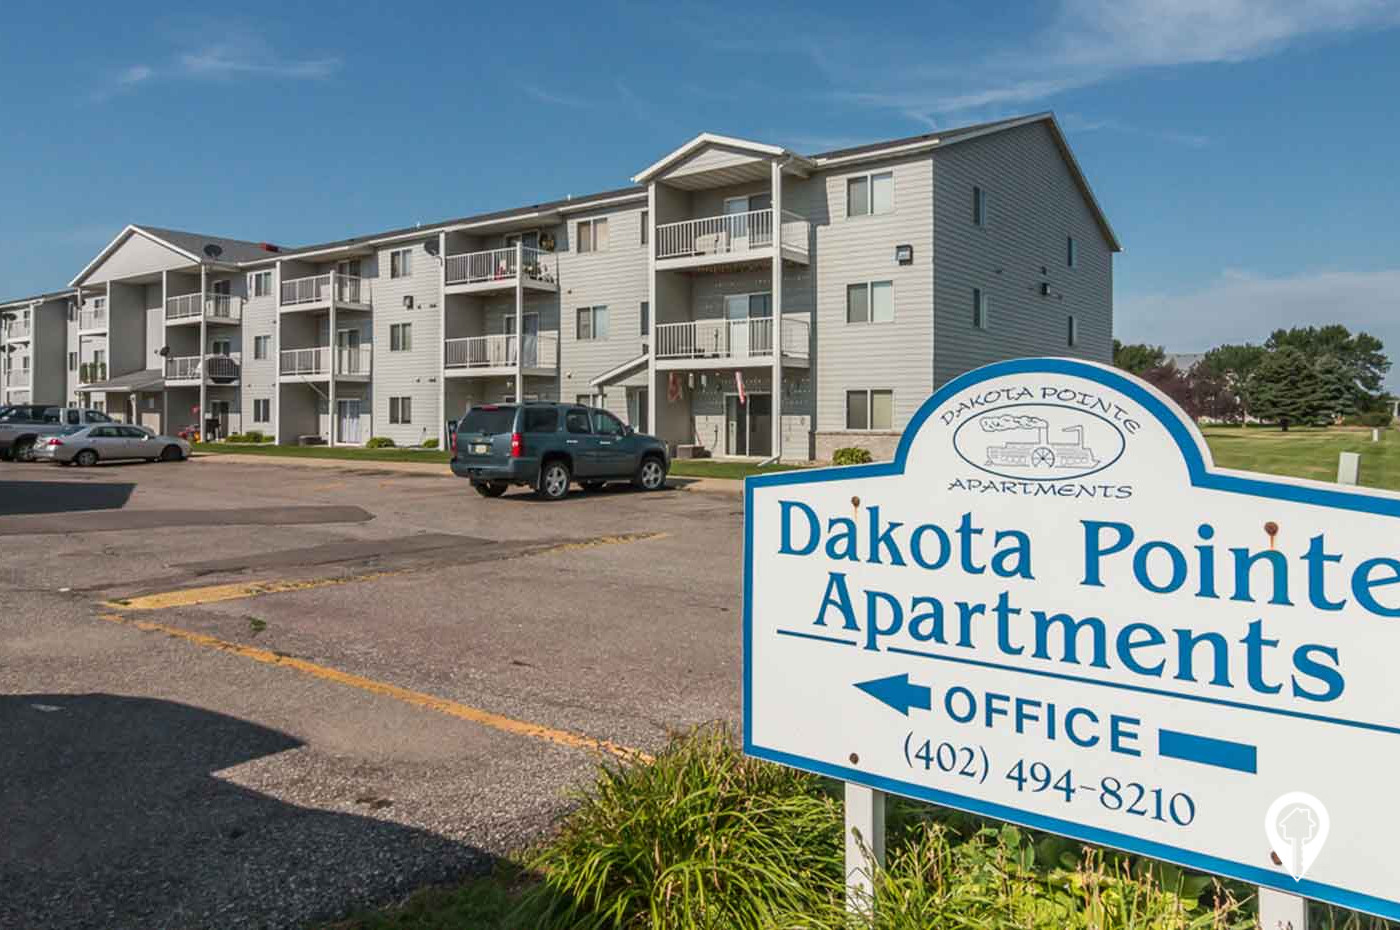 Dakota Pointe Apartments